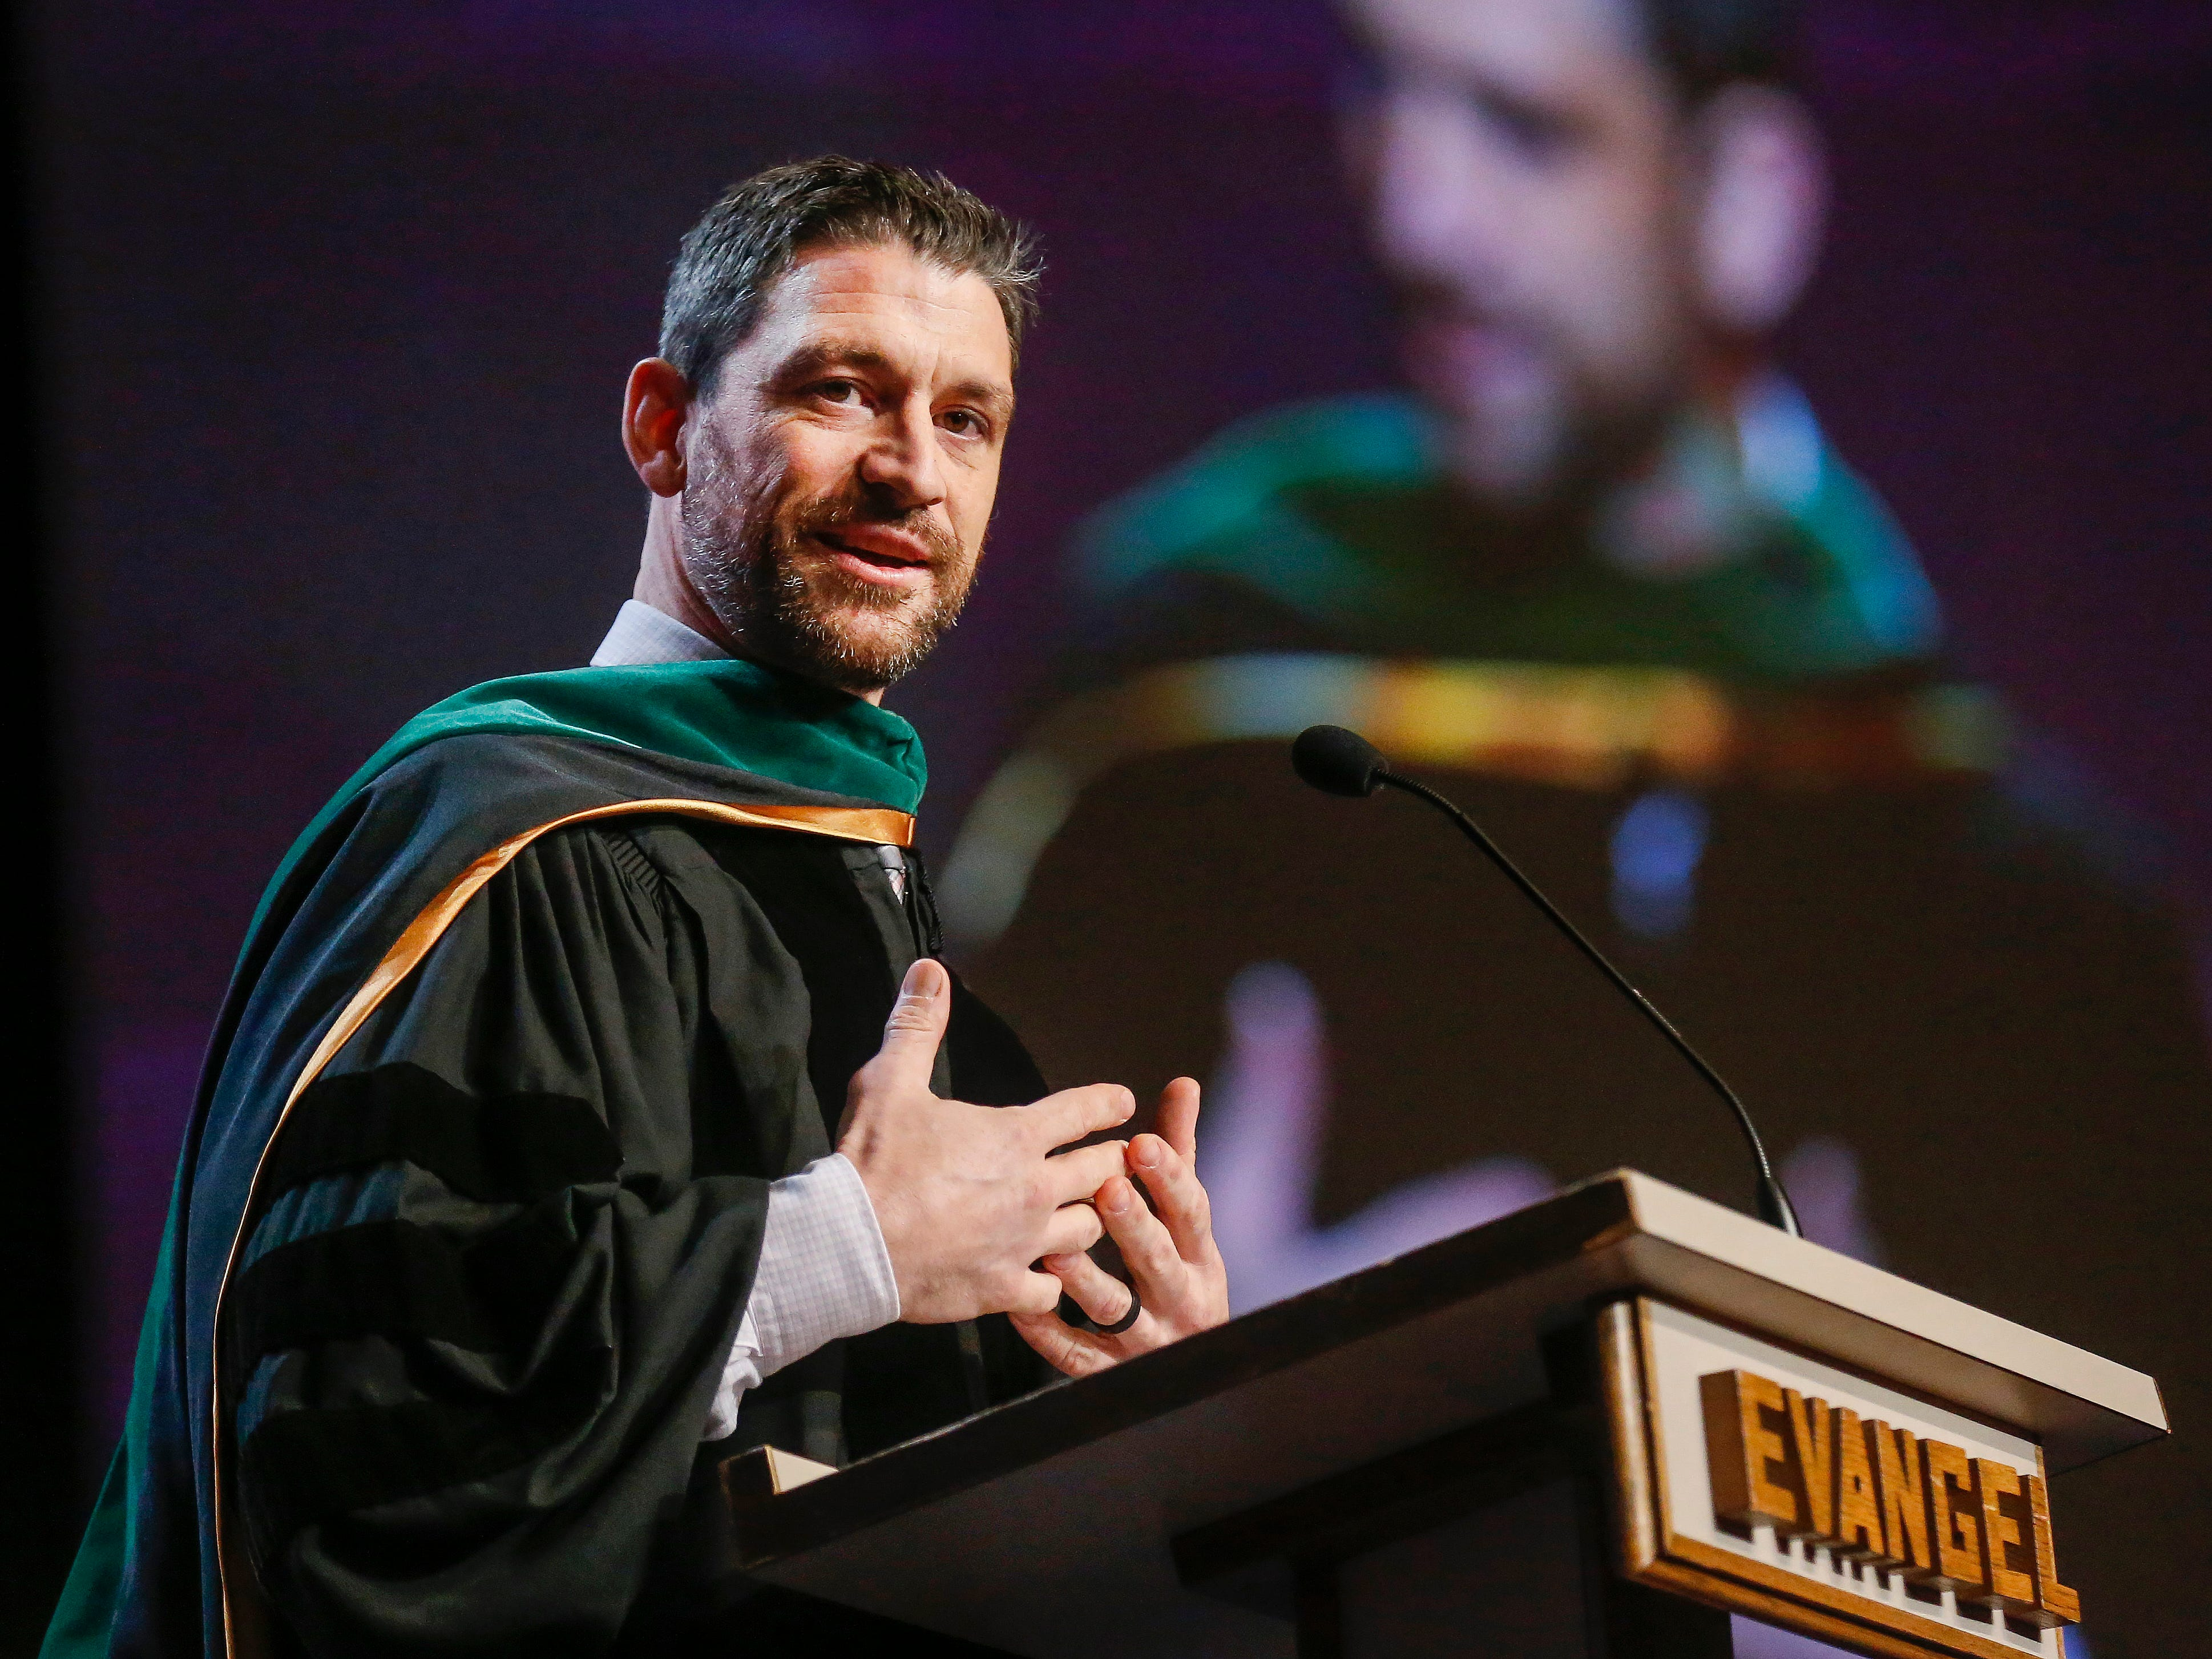 Dr. Gregory Mundis delivers the commencement address during Evangel University's 2019 Commencement Ceremony at James River Church in Ozark on Friday, May 3, 2019.